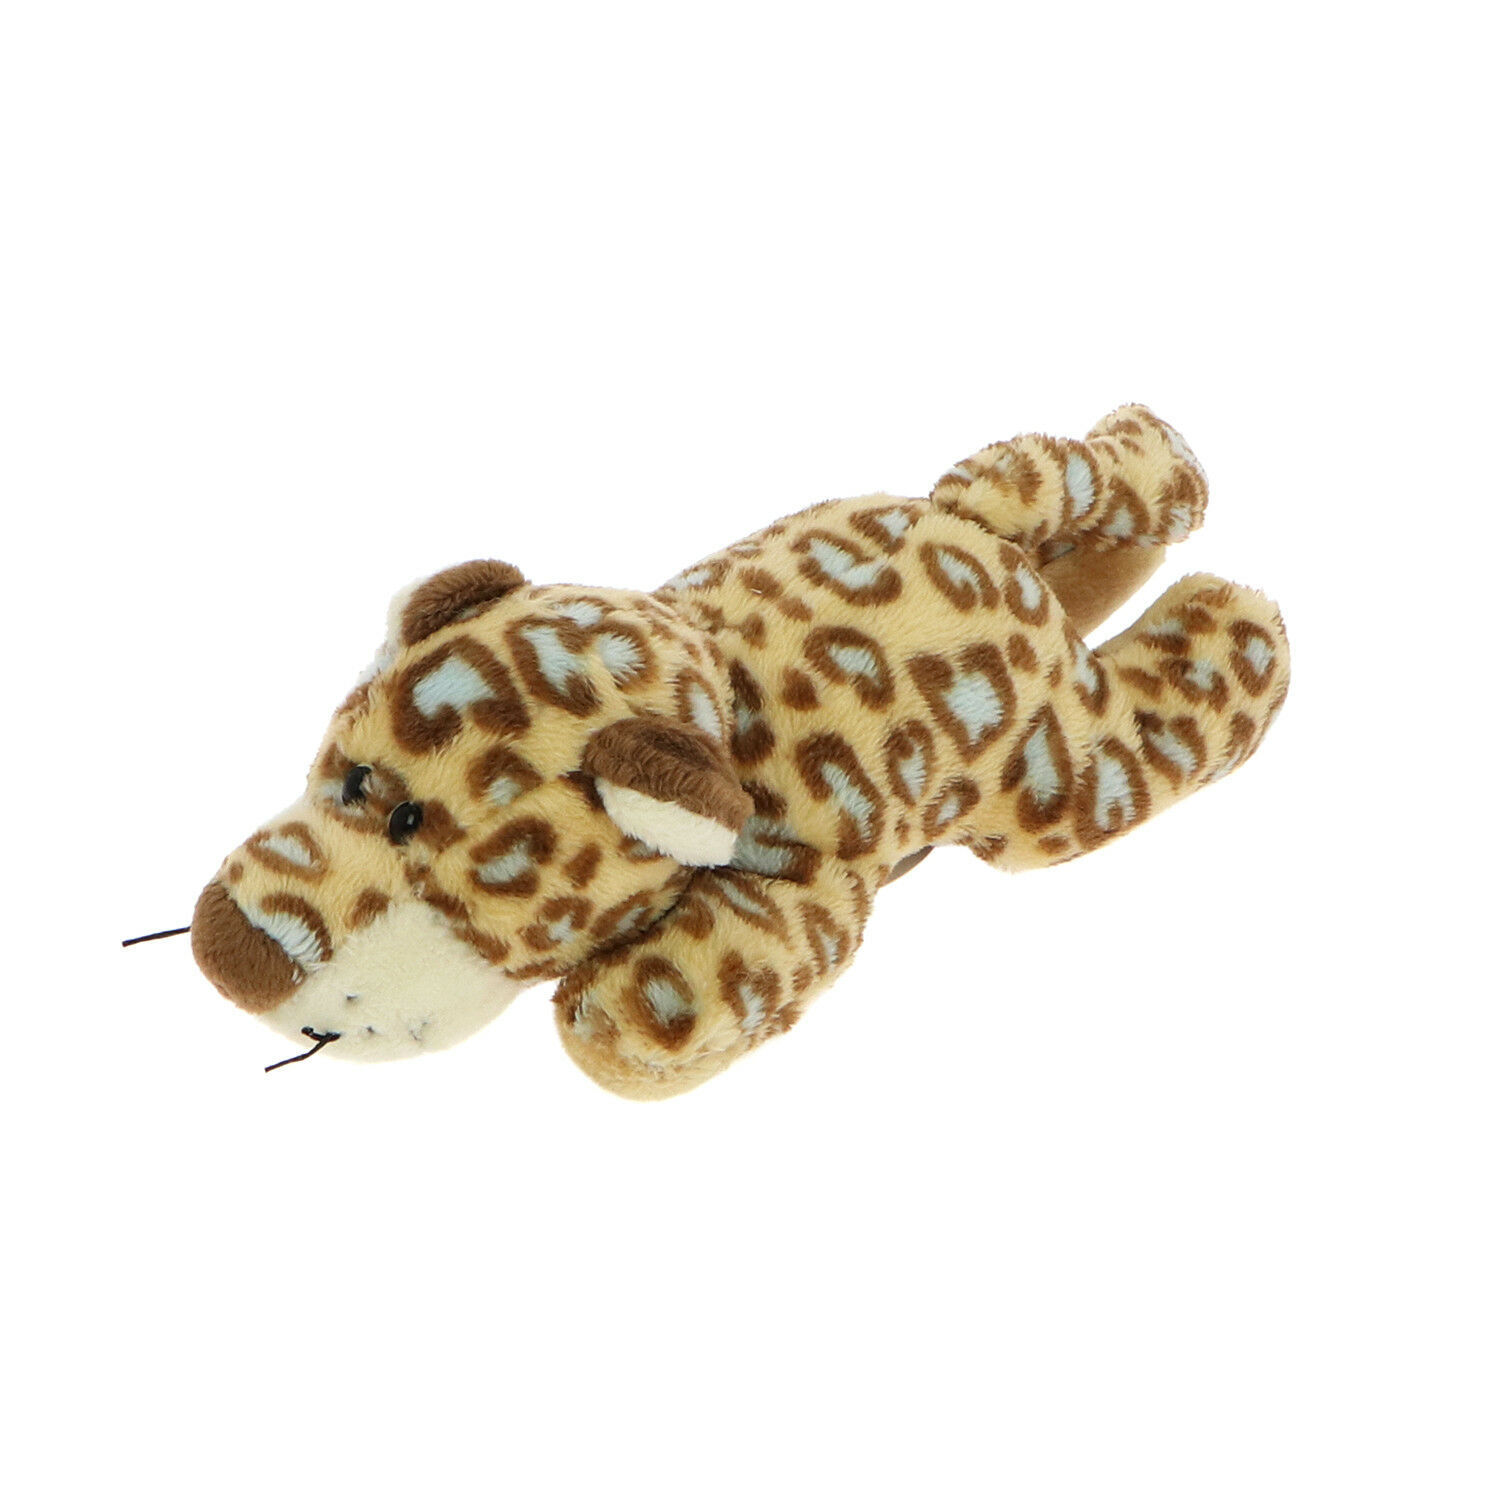 Primary image for MagNICI Leopard Brown Blue Spots Plush Toy Animal Magnet in Paws 5 inches 12 cm